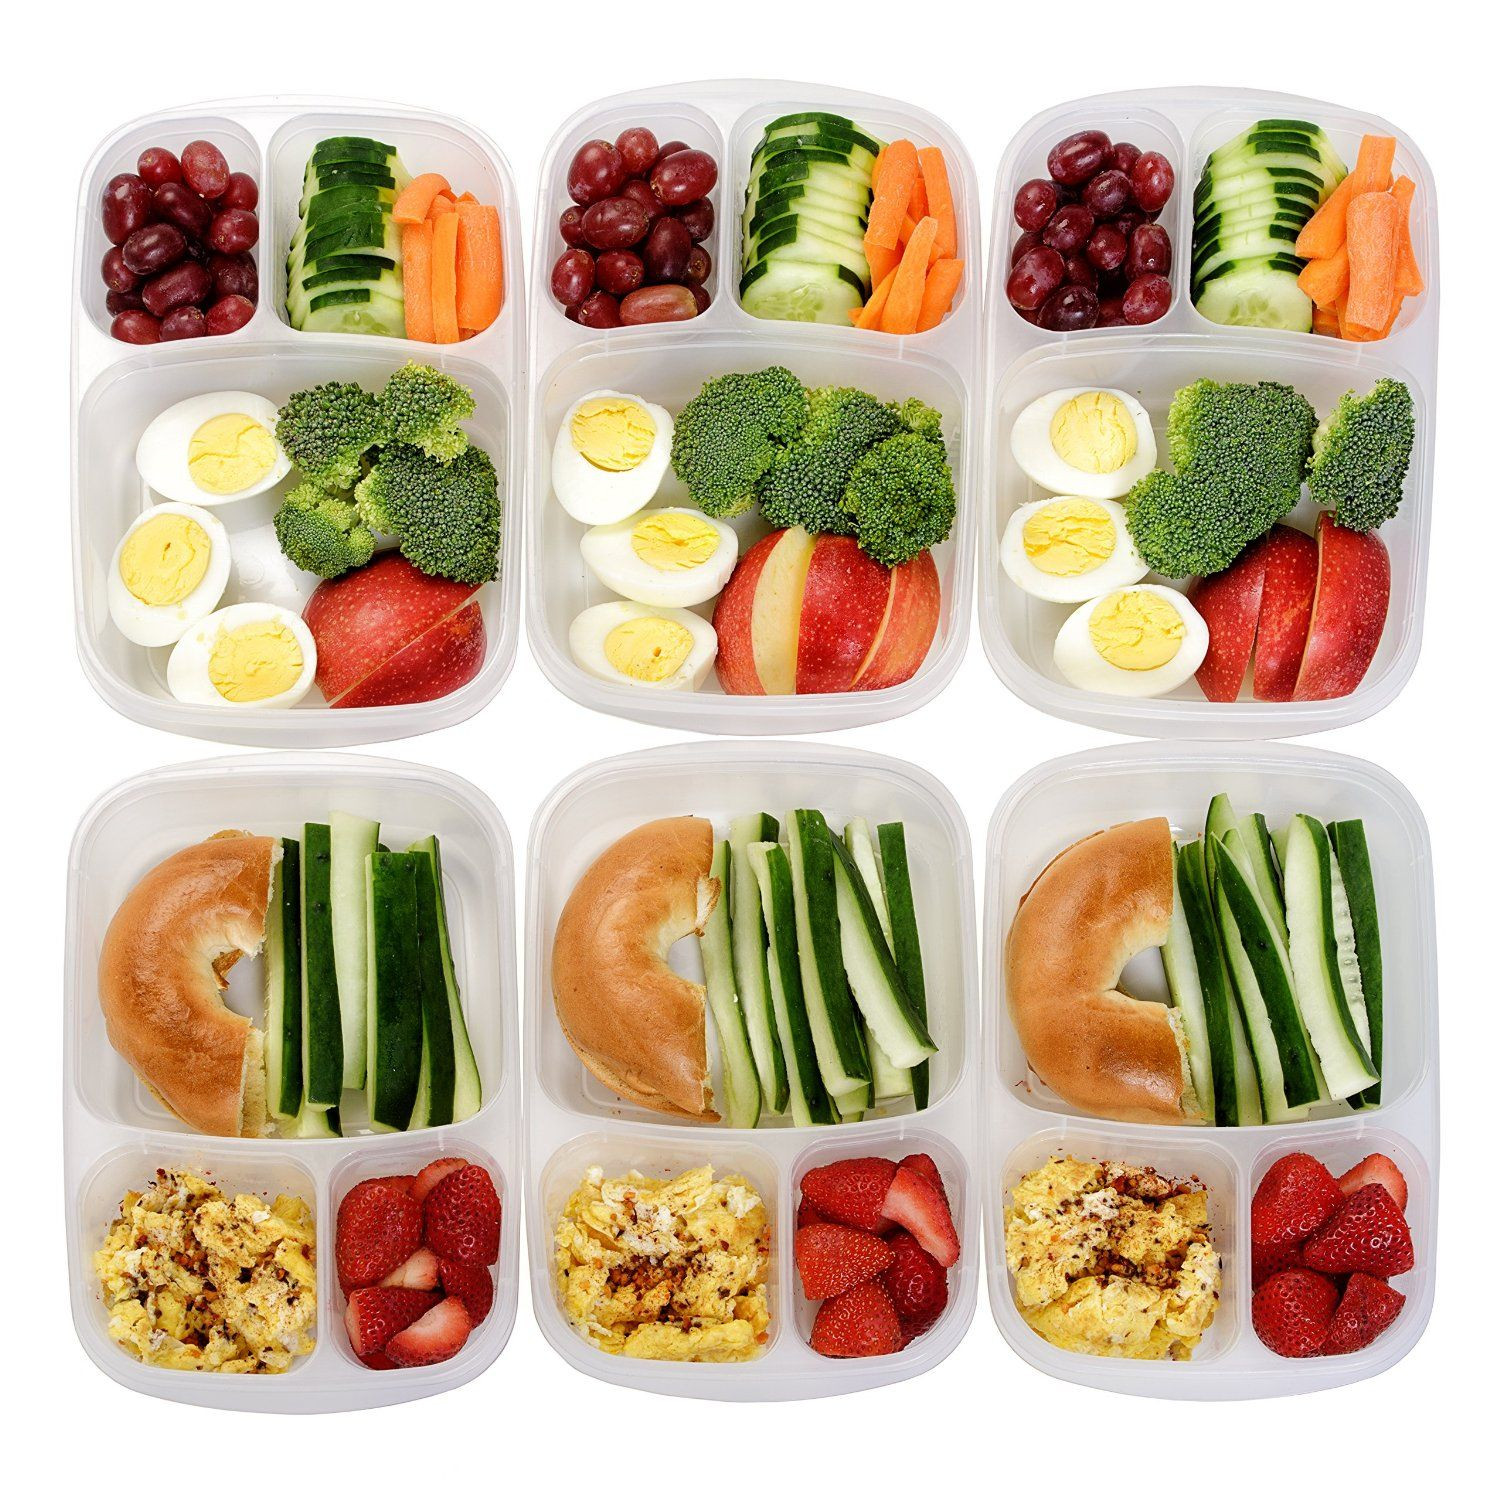 Healthy Lunches To Eat  13 Make Ahead Meals and Snacks For Healthy Eating The